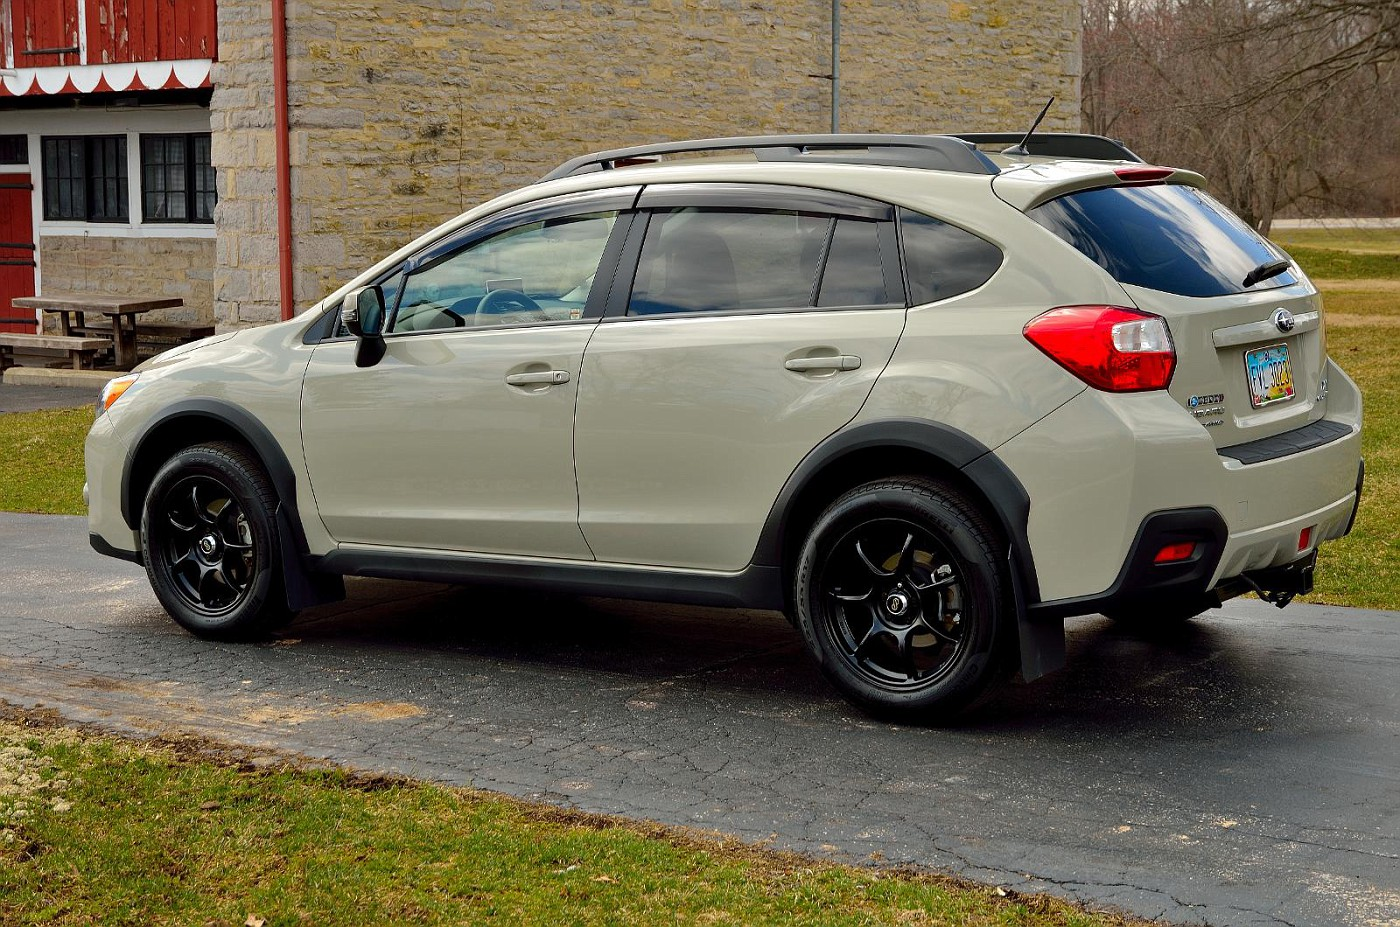 Subaru Crosstrek Sti Wheels >> ('11-'14) 2012-2013 Impreza Rims & Wheels Gallery Thread - Page 55 - NASIOC